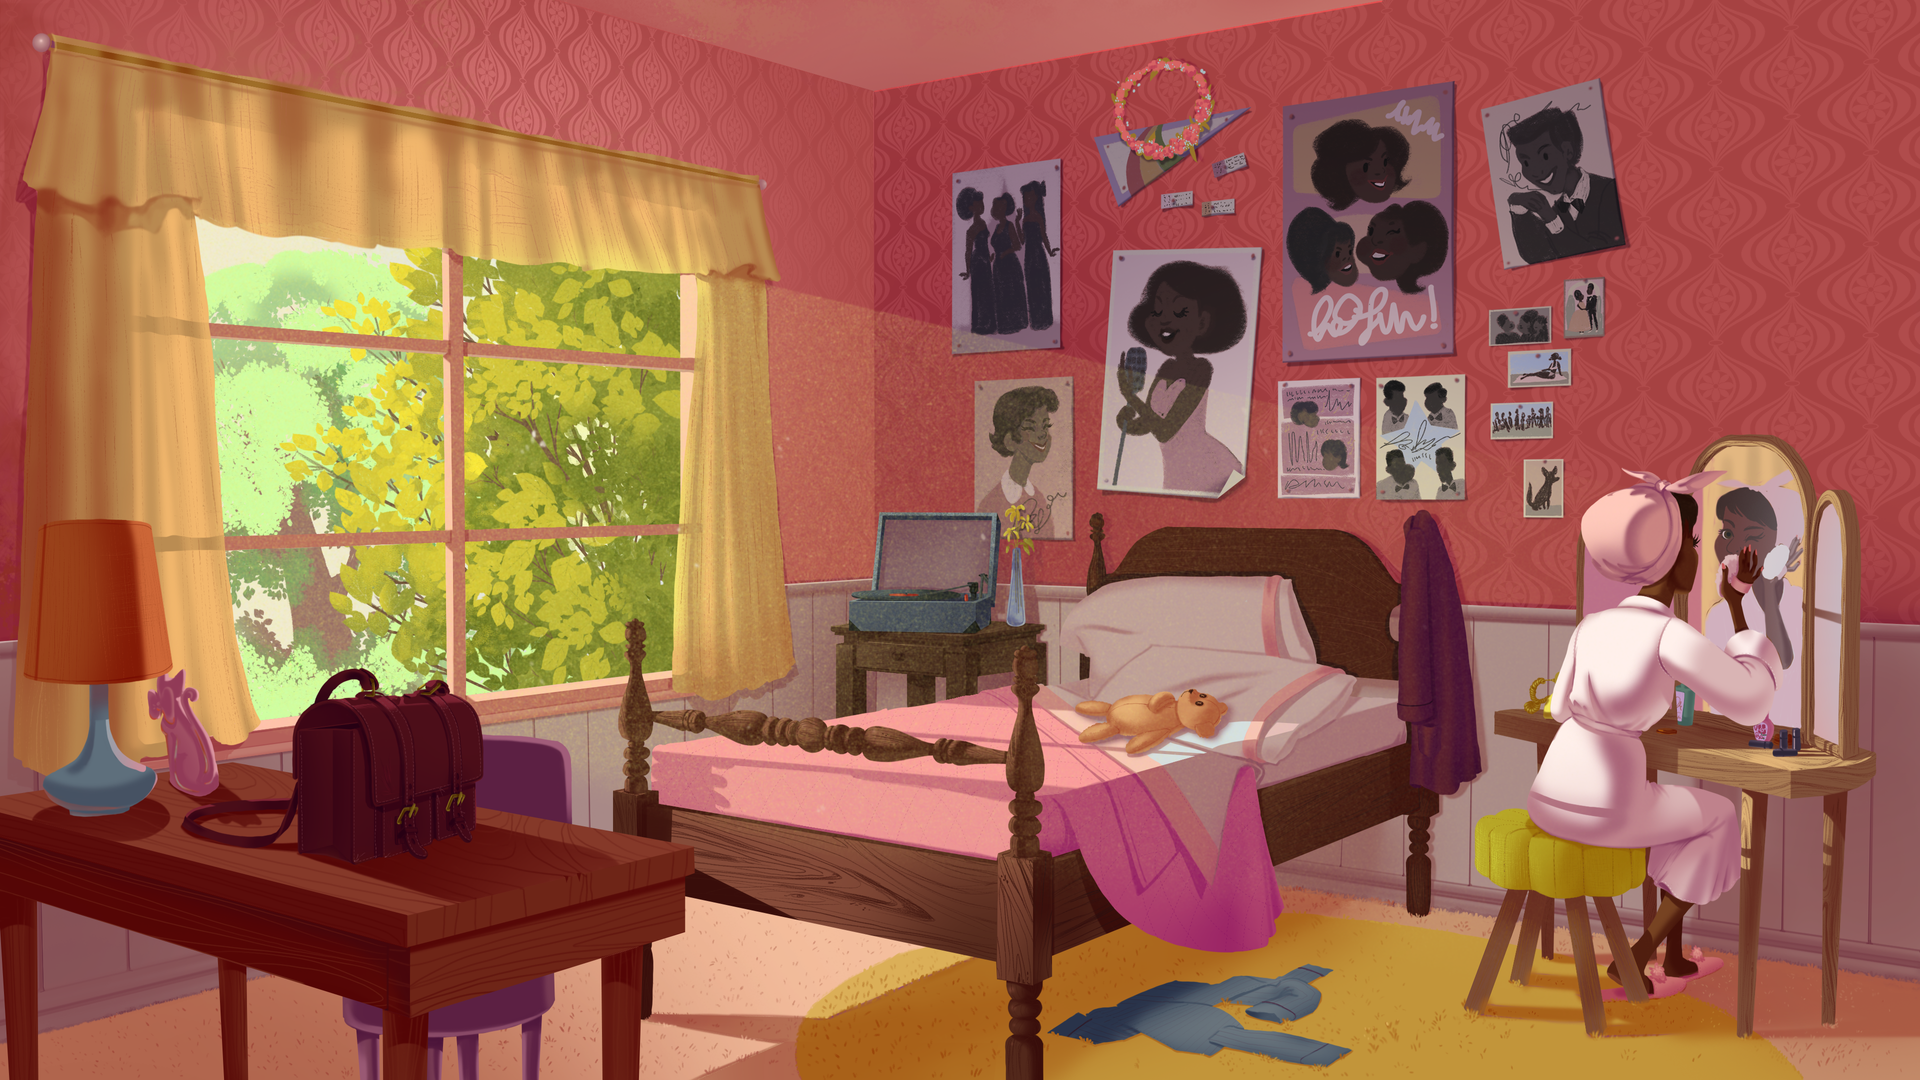 Morning in Dorothy's Room